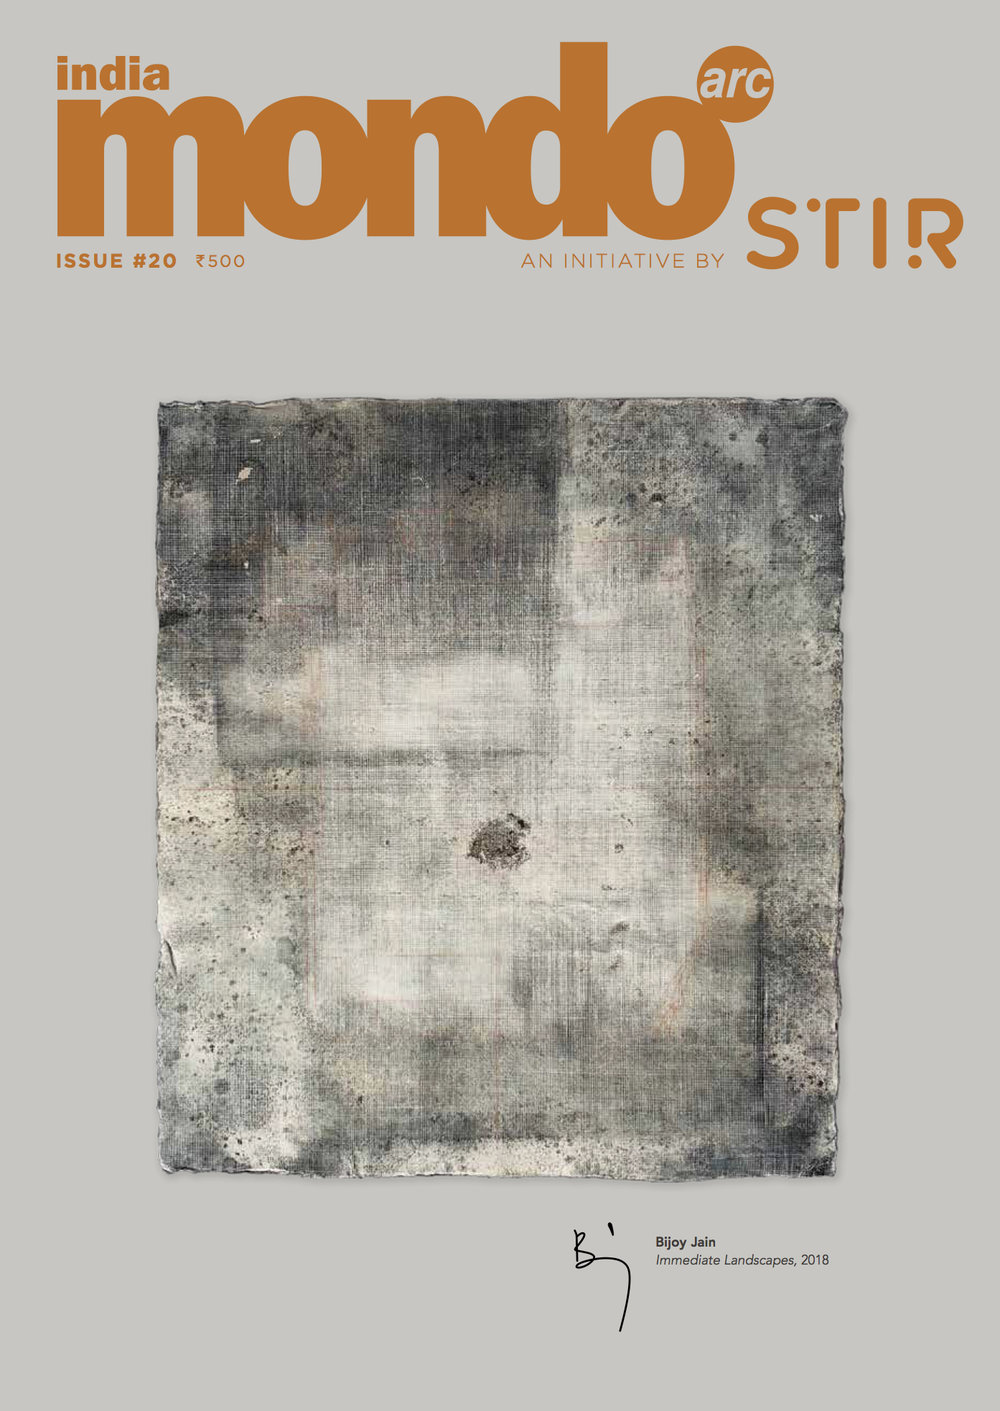 mondoarcindia Issue #20-Review-Salone del Mobile_Sandeep Khosla.jpg